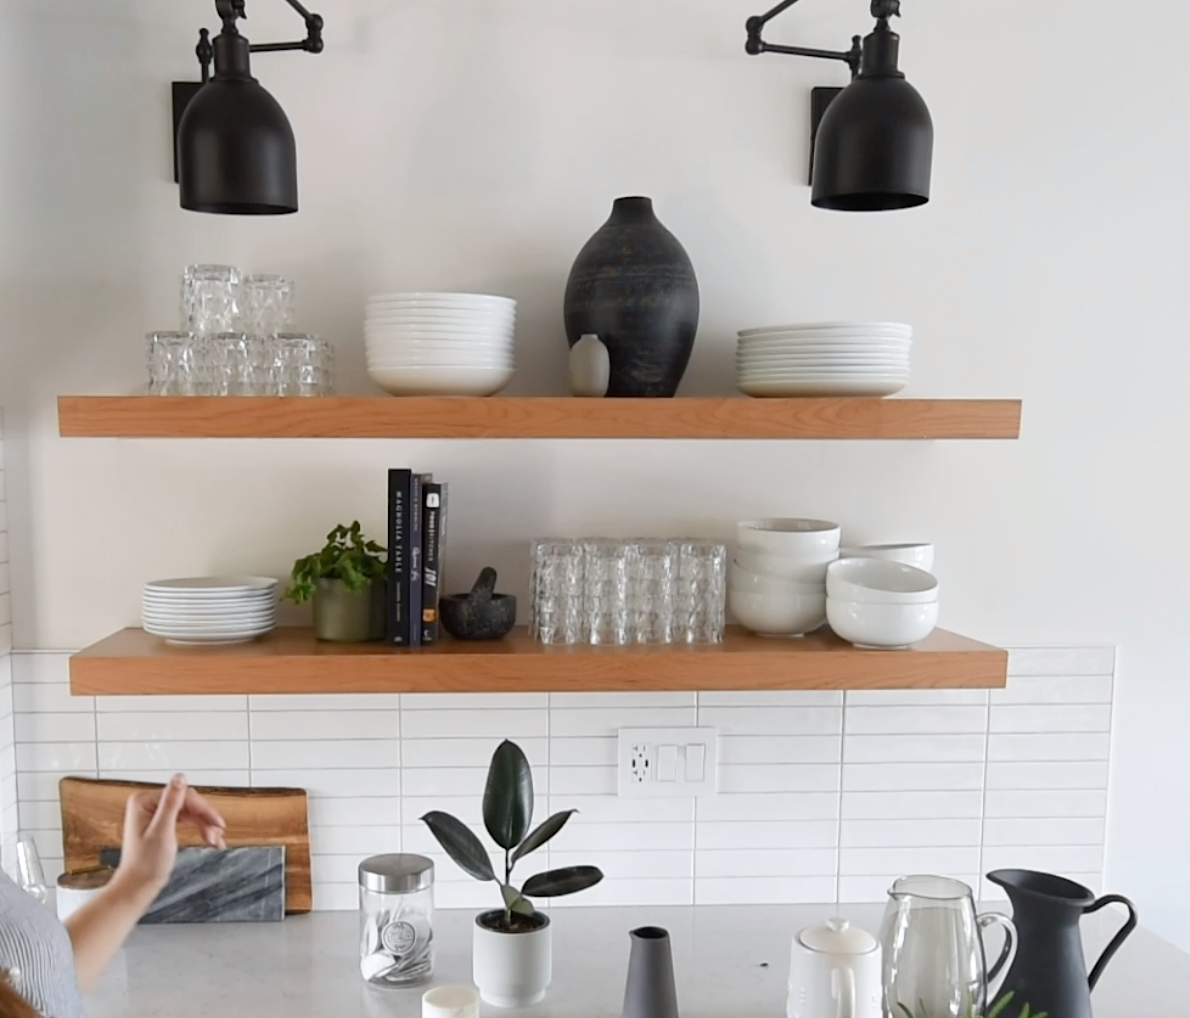 How to style kitchen open shelves for function and look